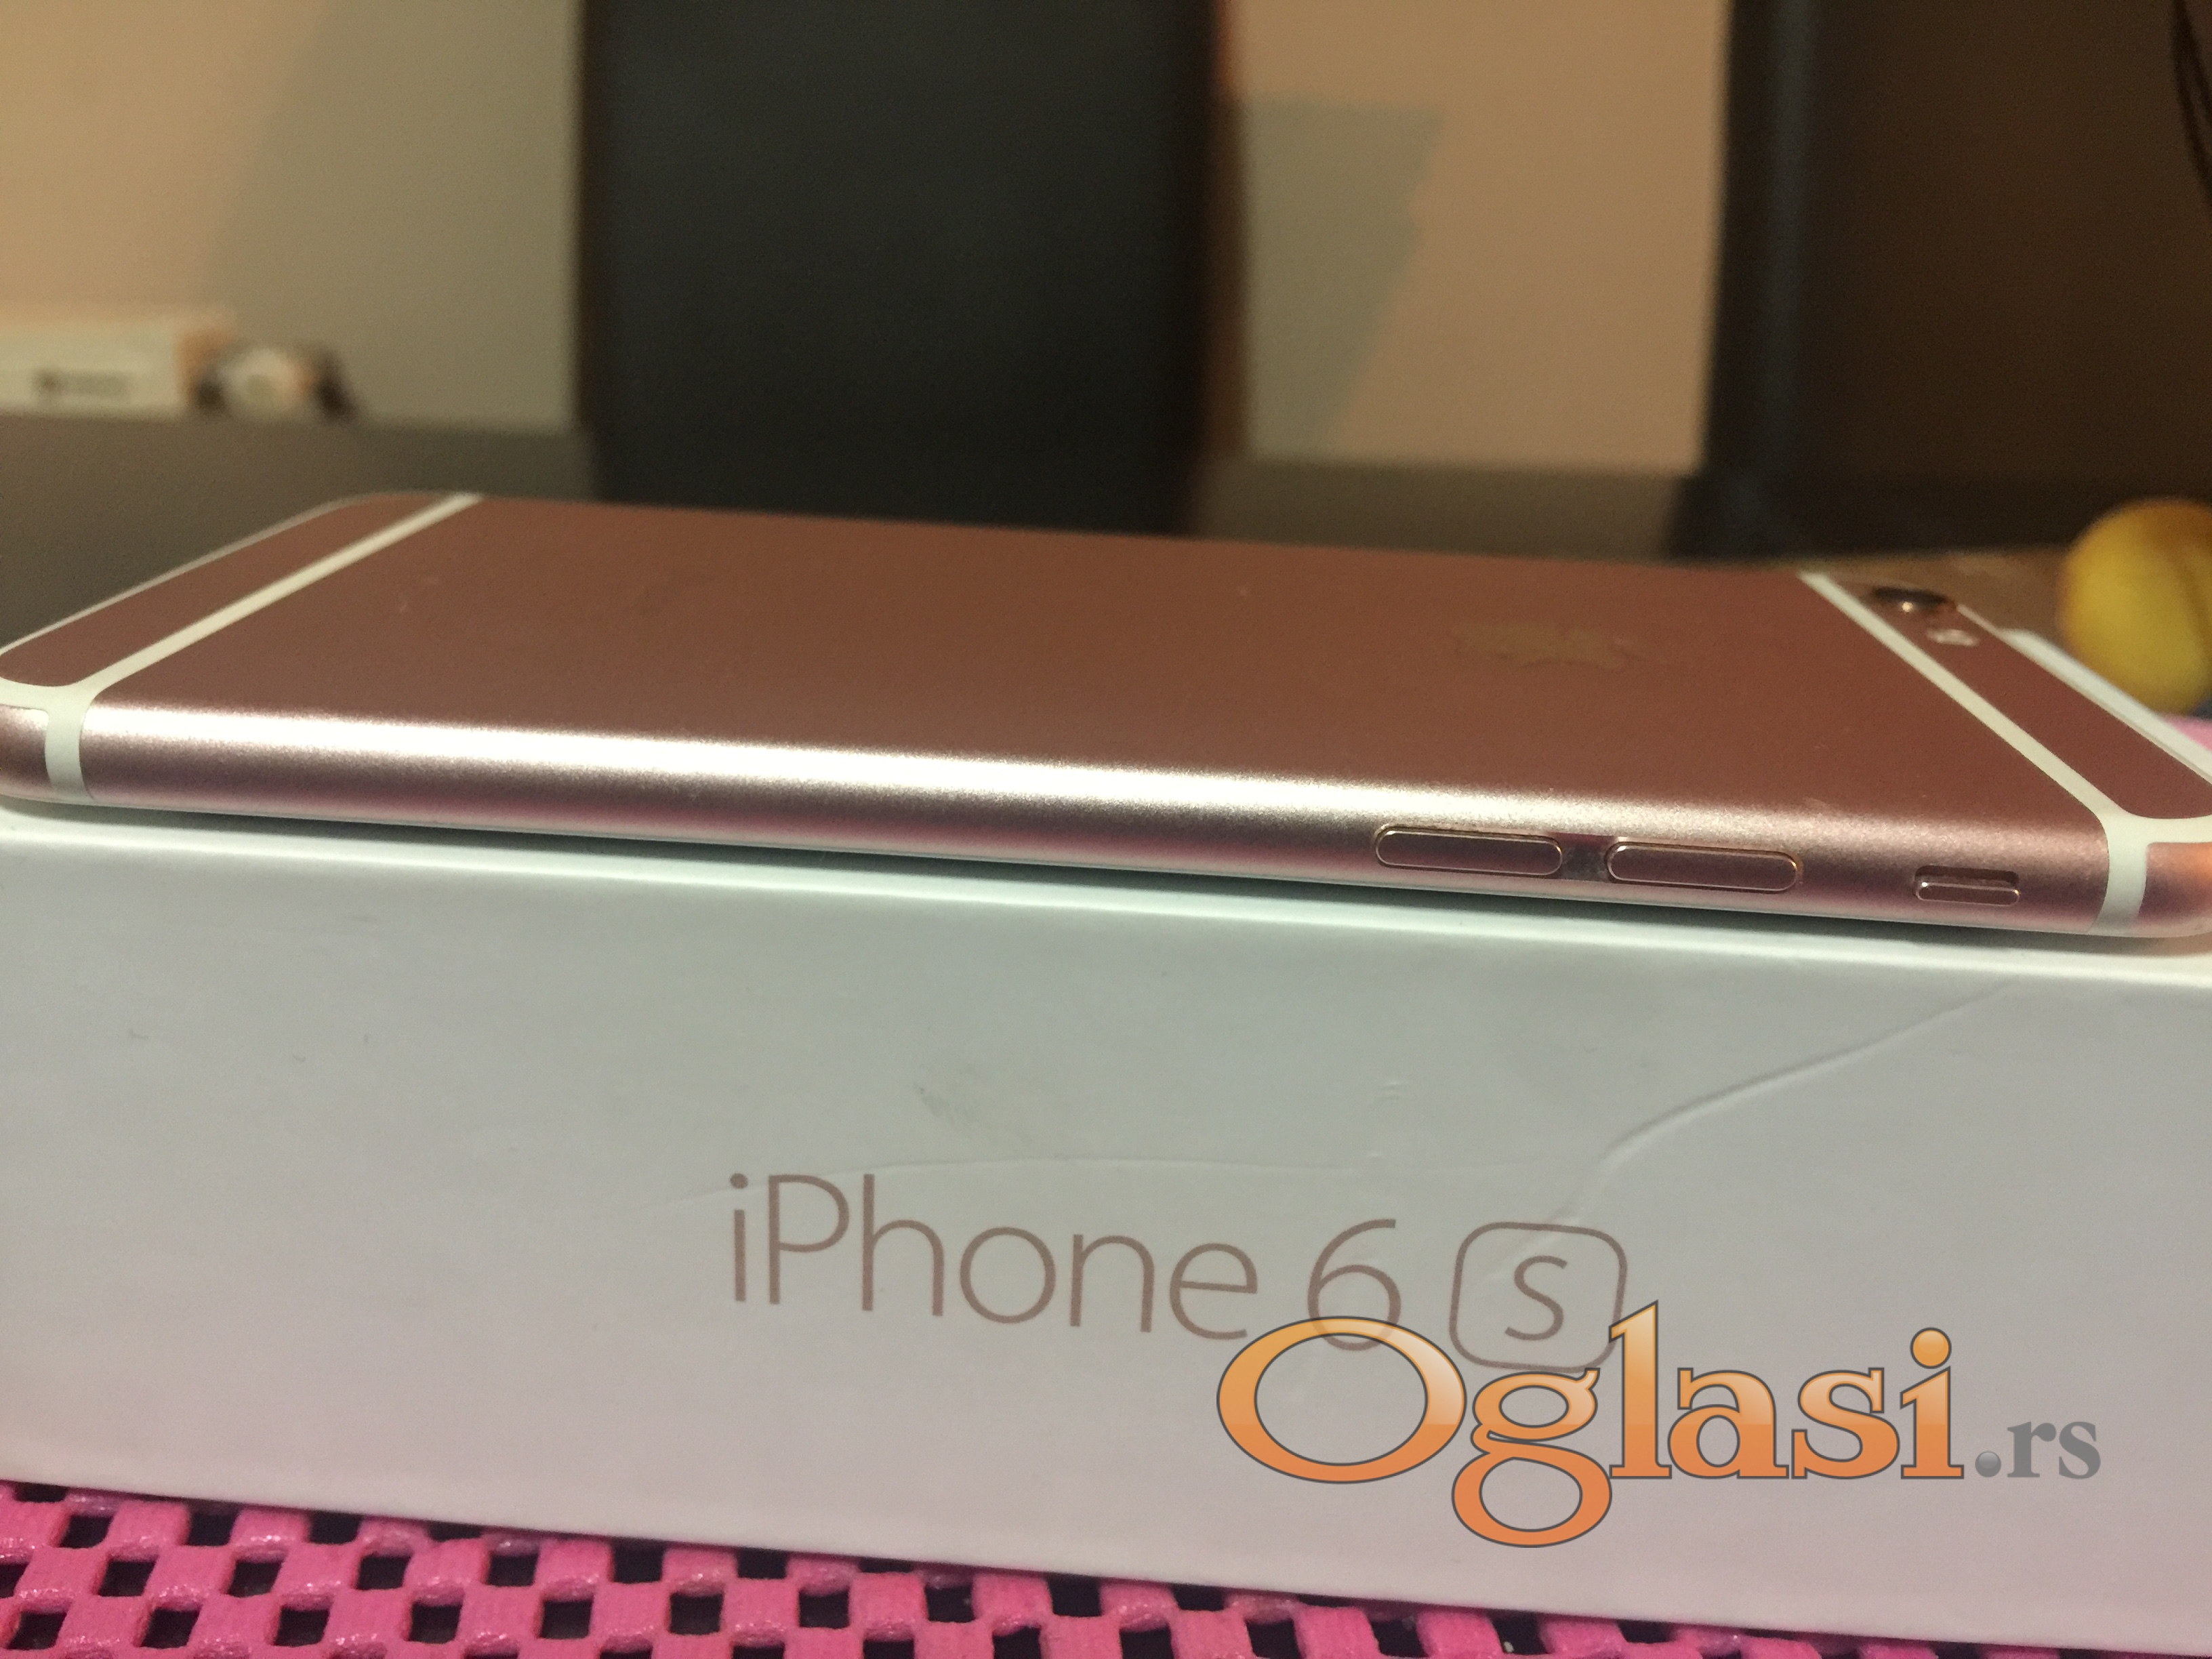 apple iphone 6s požarevac apple iphone 6s 02 219467 oglasi rs 10101